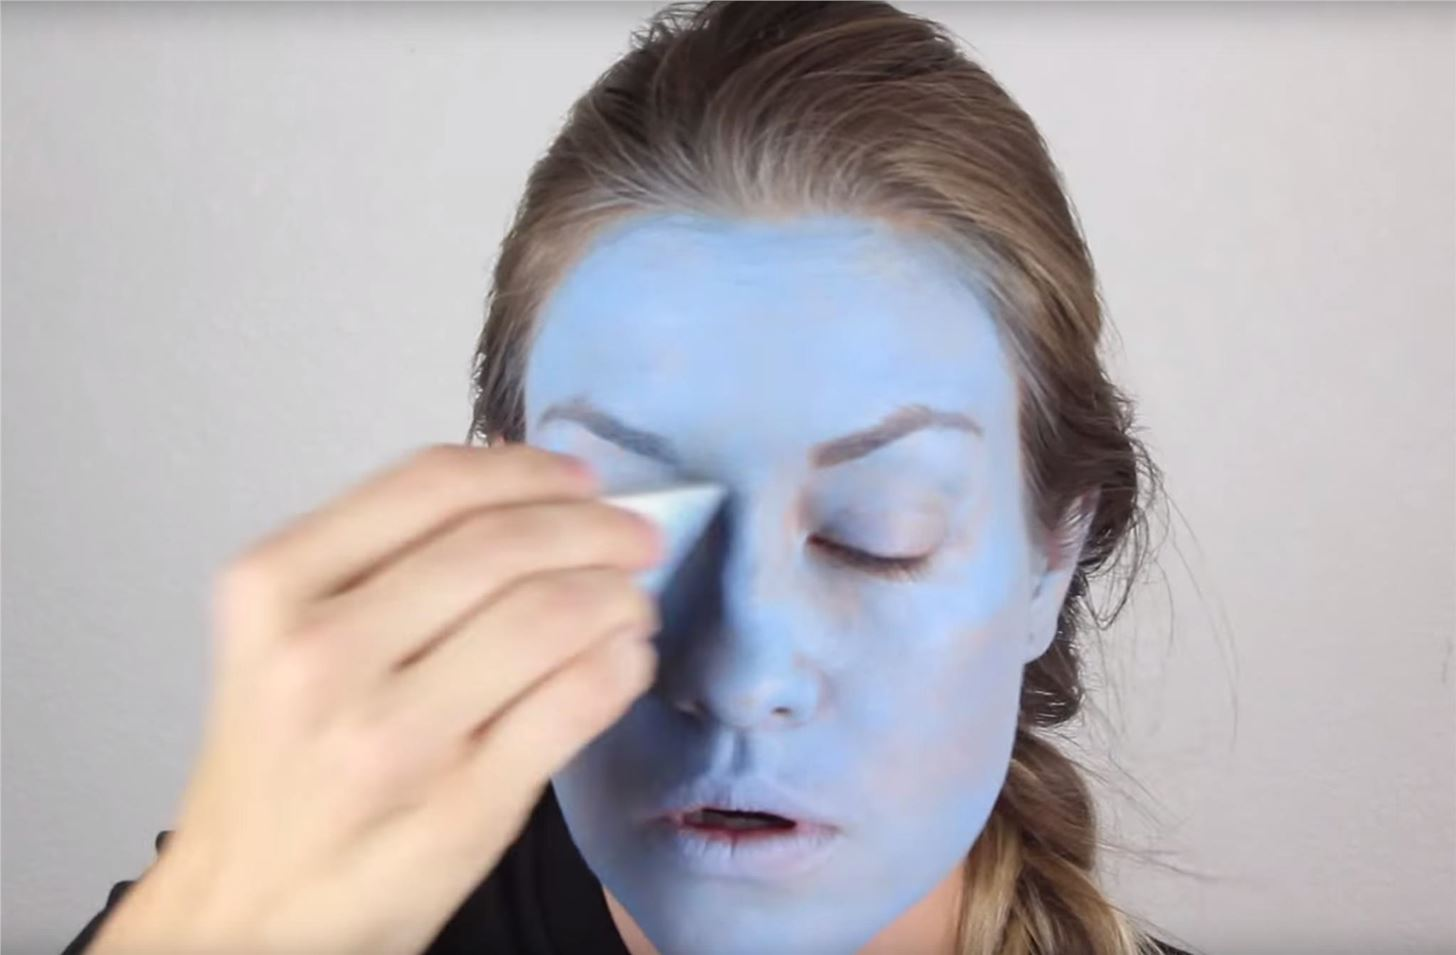 Inside Out: DIY Sadness Costume & Makeup for Halloween